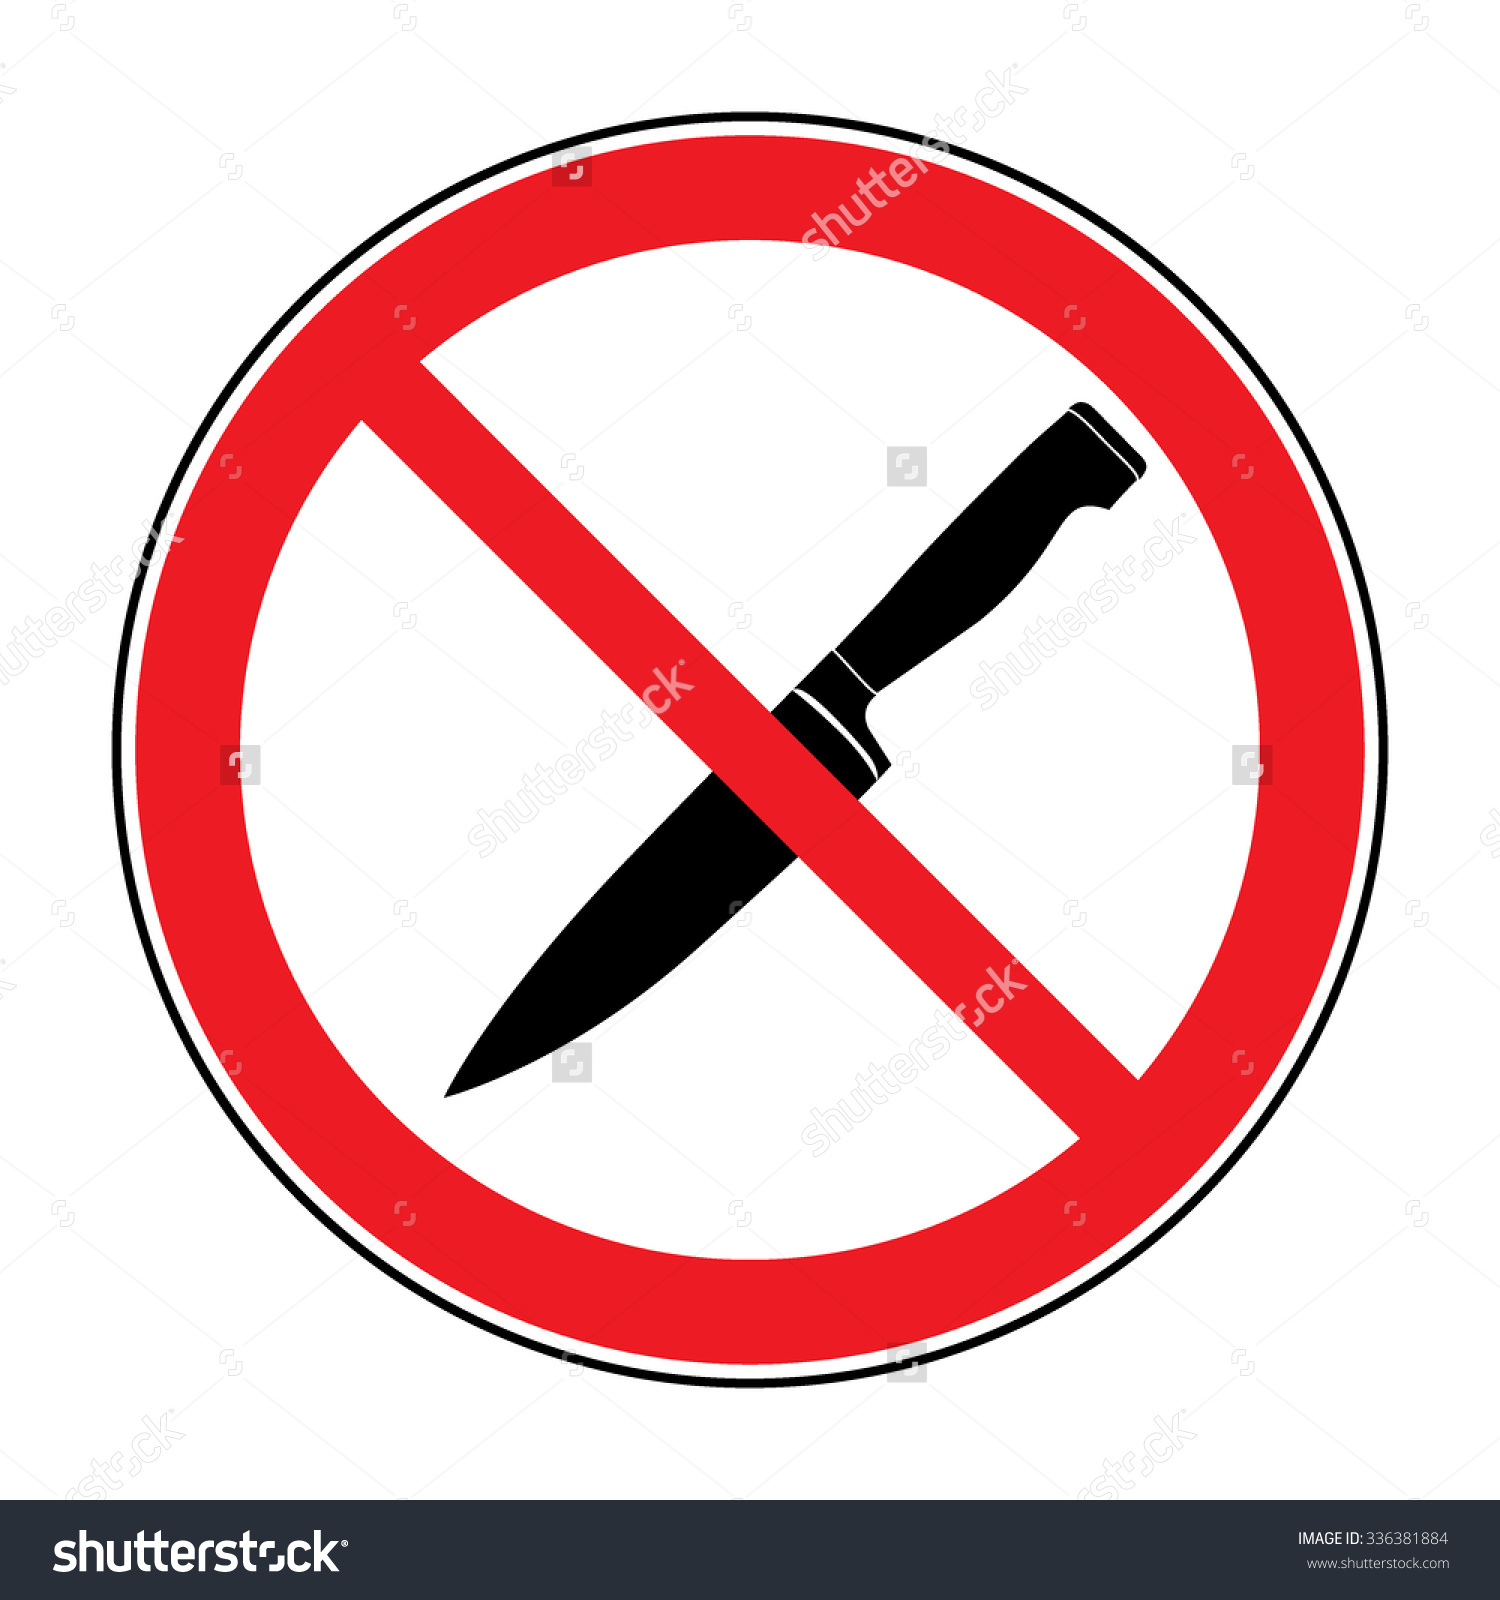 No weapons allowed clip art.